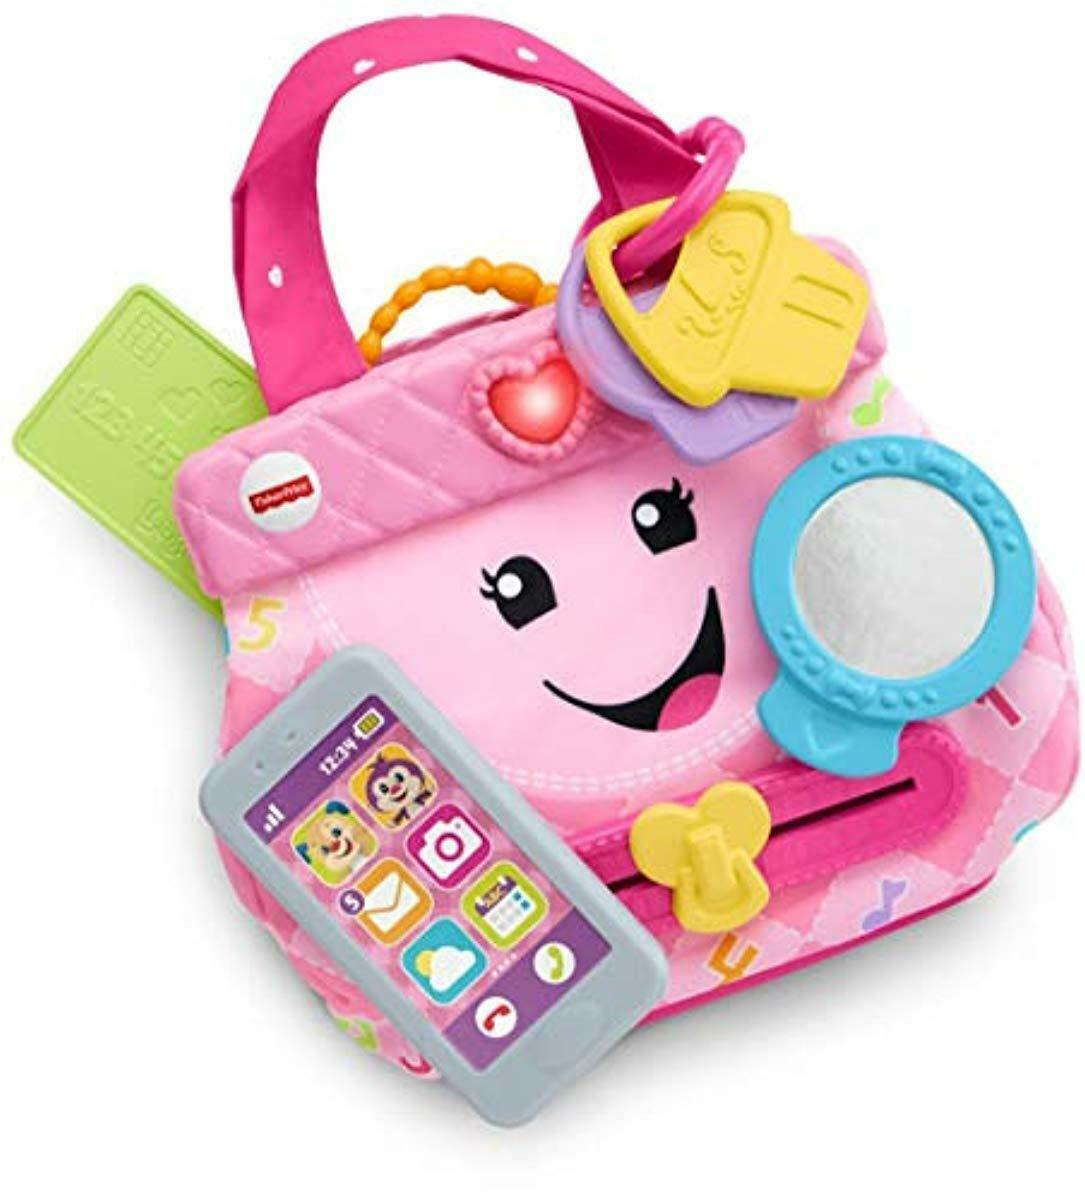 Fisher-Price Laugh & Learn My Smart Purse image 2